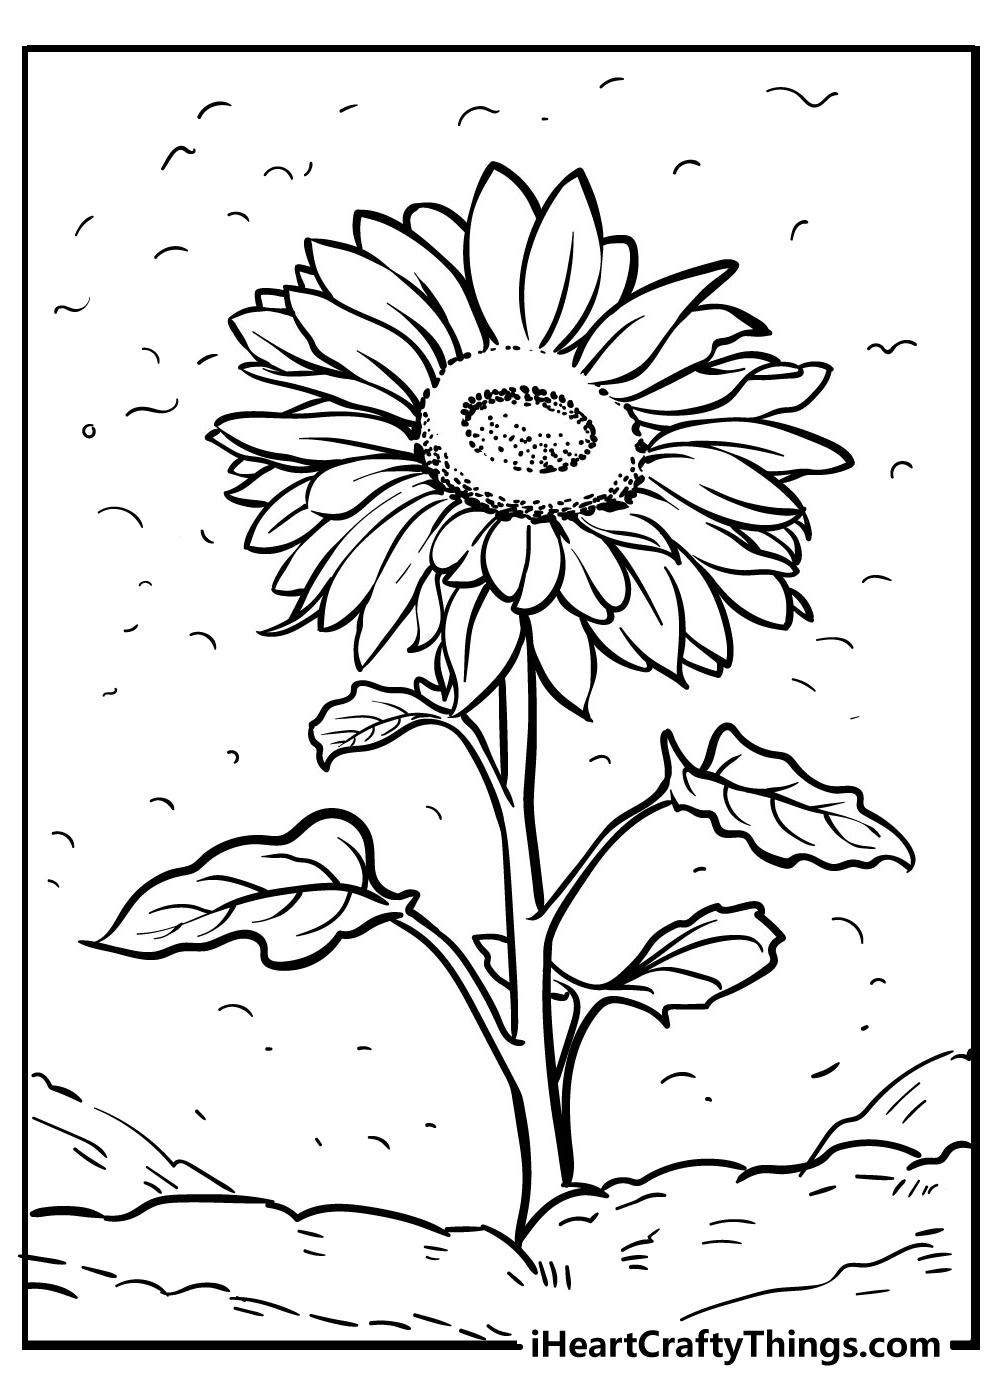 new sunflower coloring pages free download